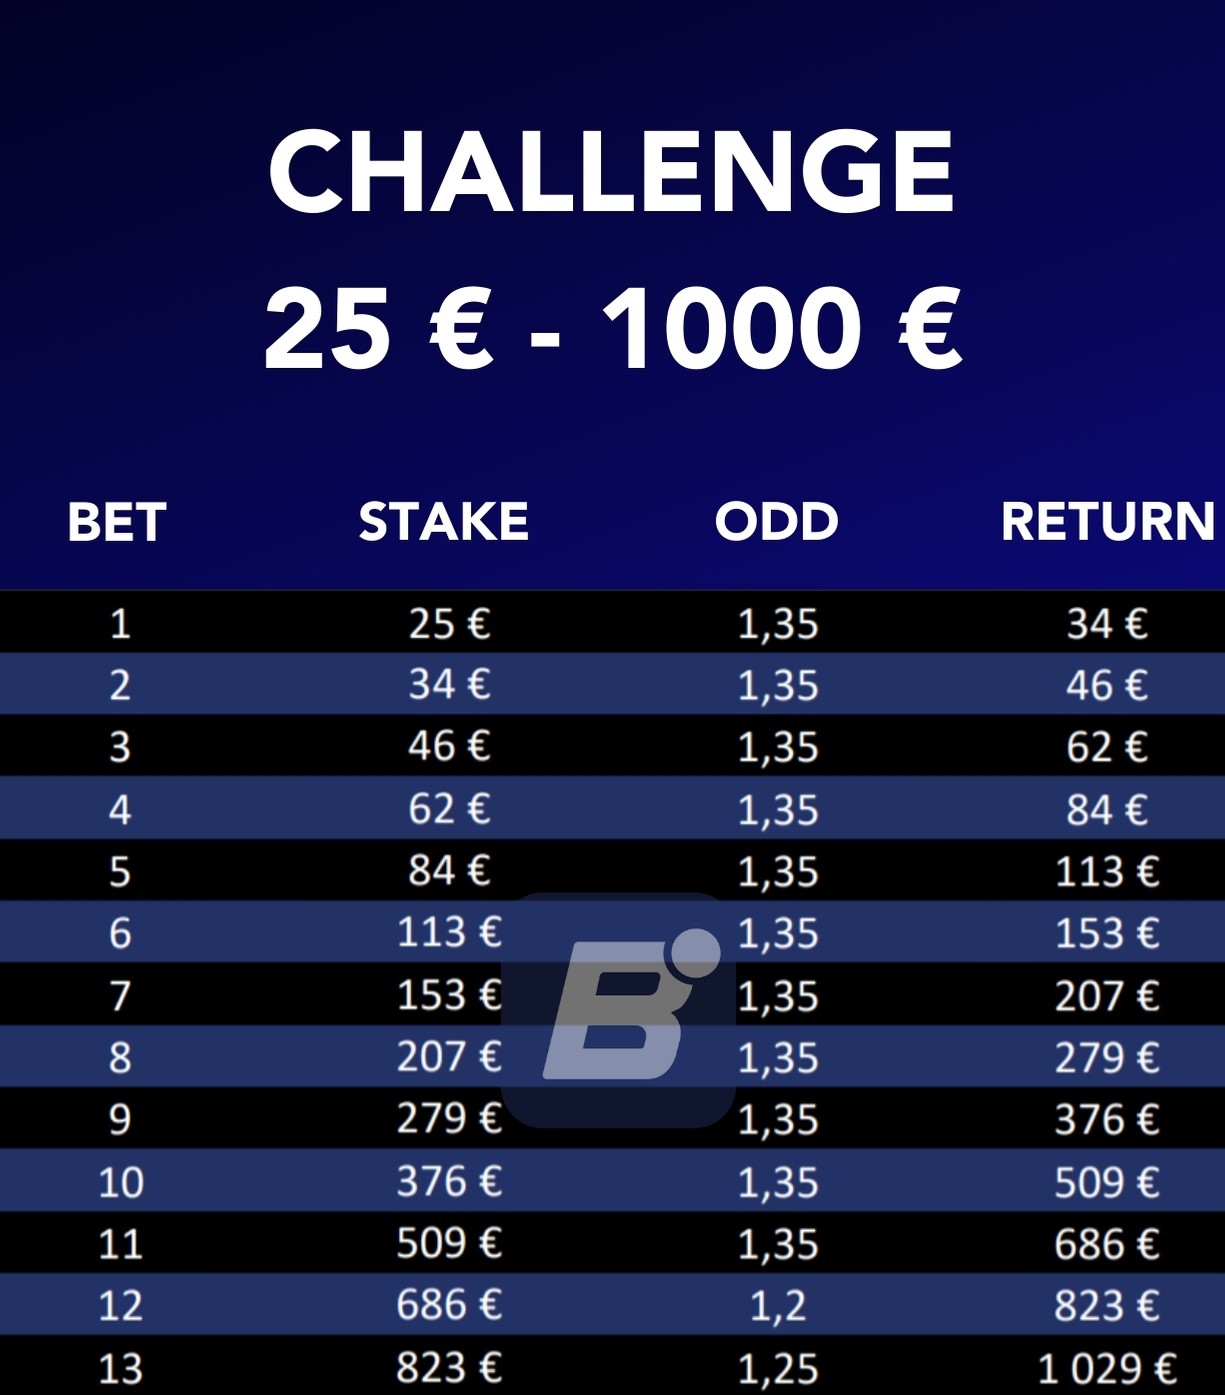 25 to 1000 betting challenge twitter sign sports betting teaser strategy games